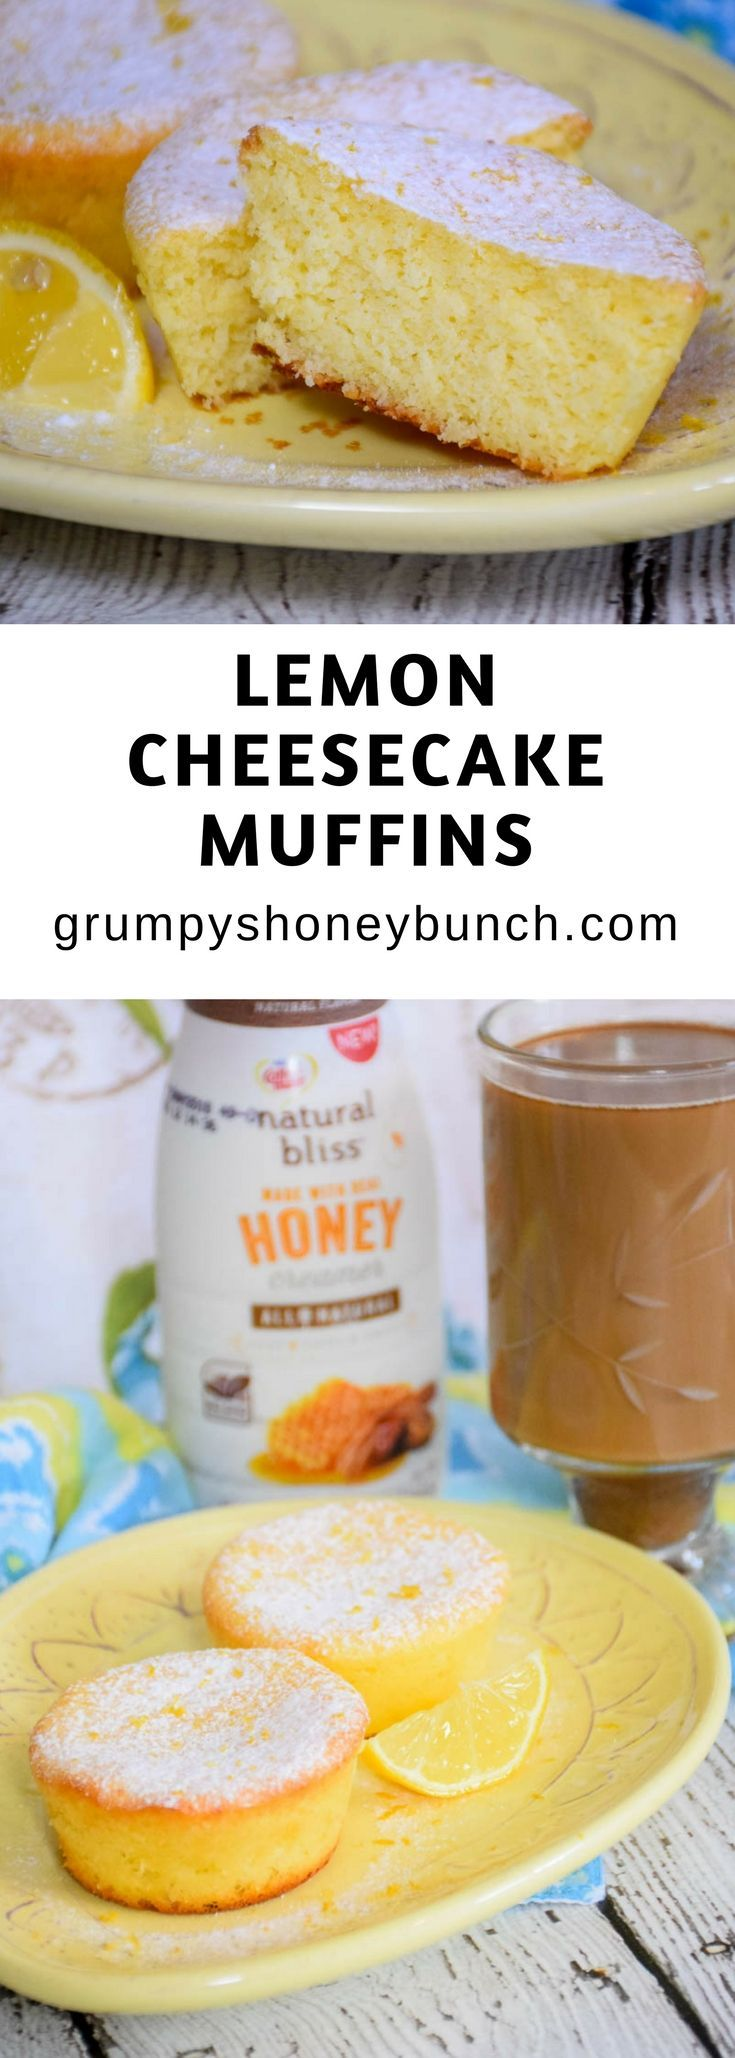 Lemon Cheesecake Muffins have that bright lemon flavor, are finely textured and lightweight, and completely delicious! Perfect with just a sprinkling of powdered sugar on top,  these muffins make the perfect accompanyment to celebrate spring's moments along with your hot cup of coffee and Coffee-mate®️️ natural bliss®️️ Honey creamer! #ad #FlavorYourSpring https://ooh.li/4e8df56